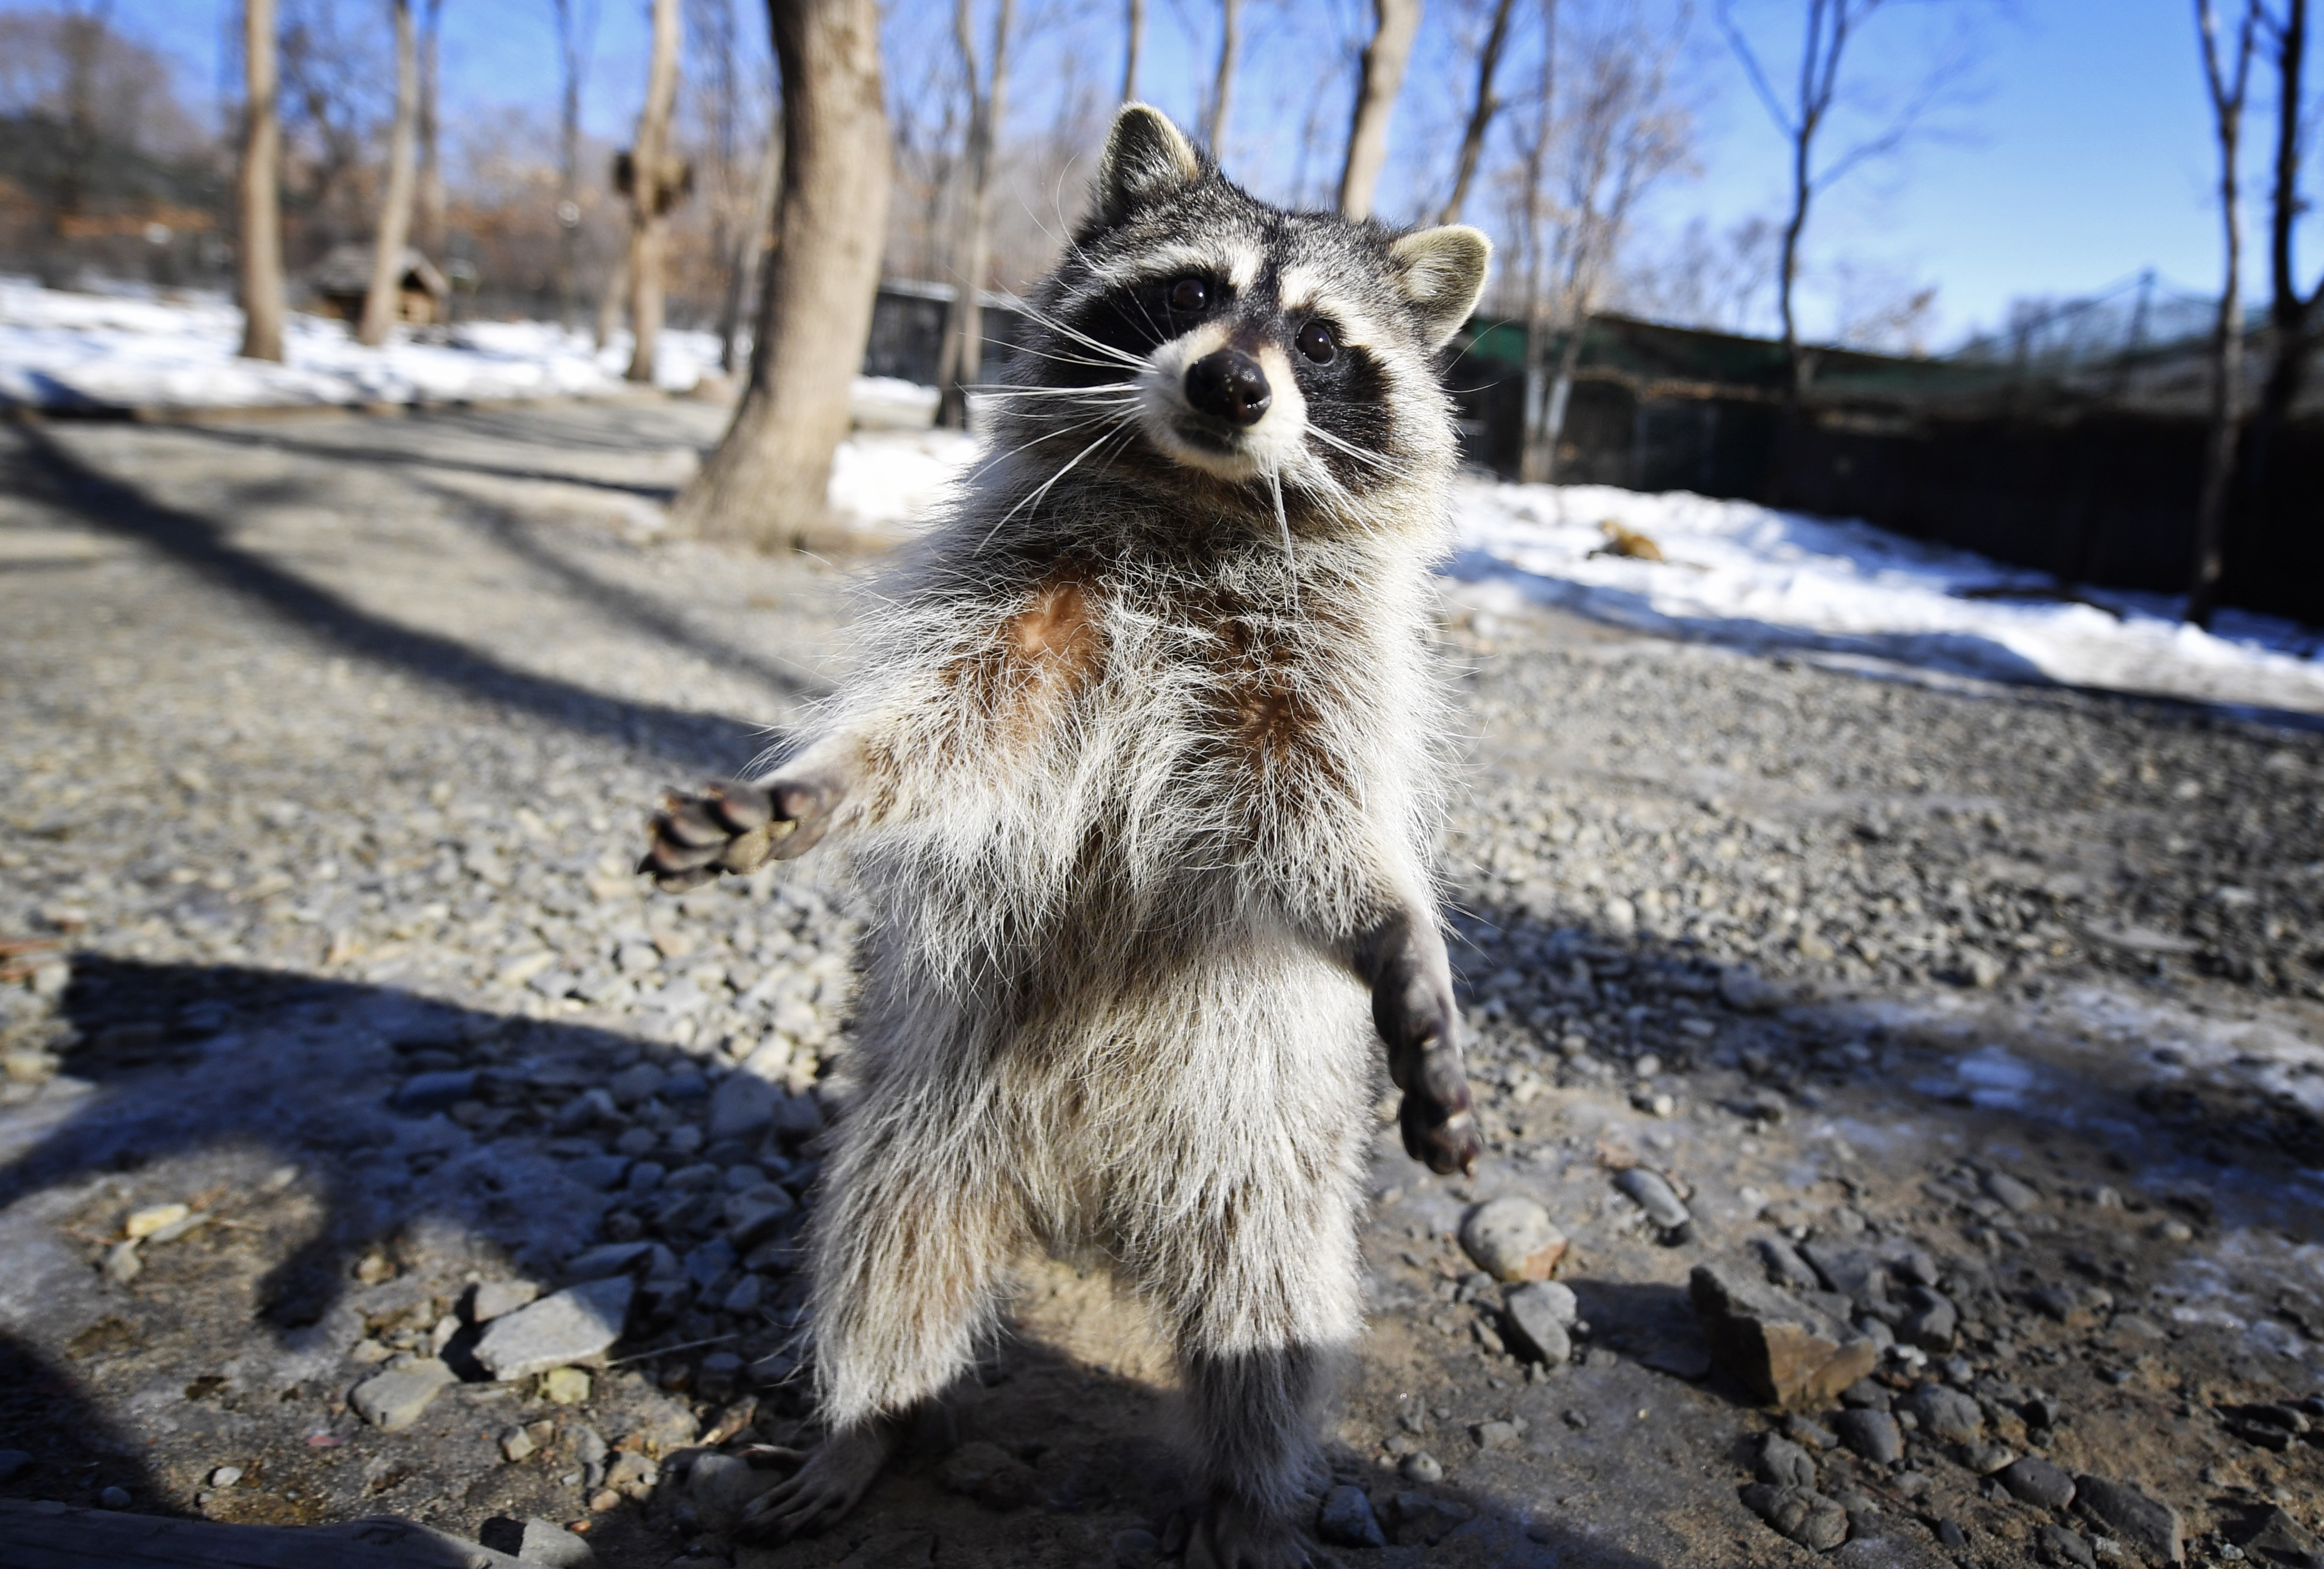 PRIMORYE TERRITORY, RUSSIA - FEBRUARY 7, 2017: A raccoon at the Primorye Safari Park in the village of Shkotovo. Yuri Smityuk/TASS (Photo by Yuri SmityukTASS via Getty Images)